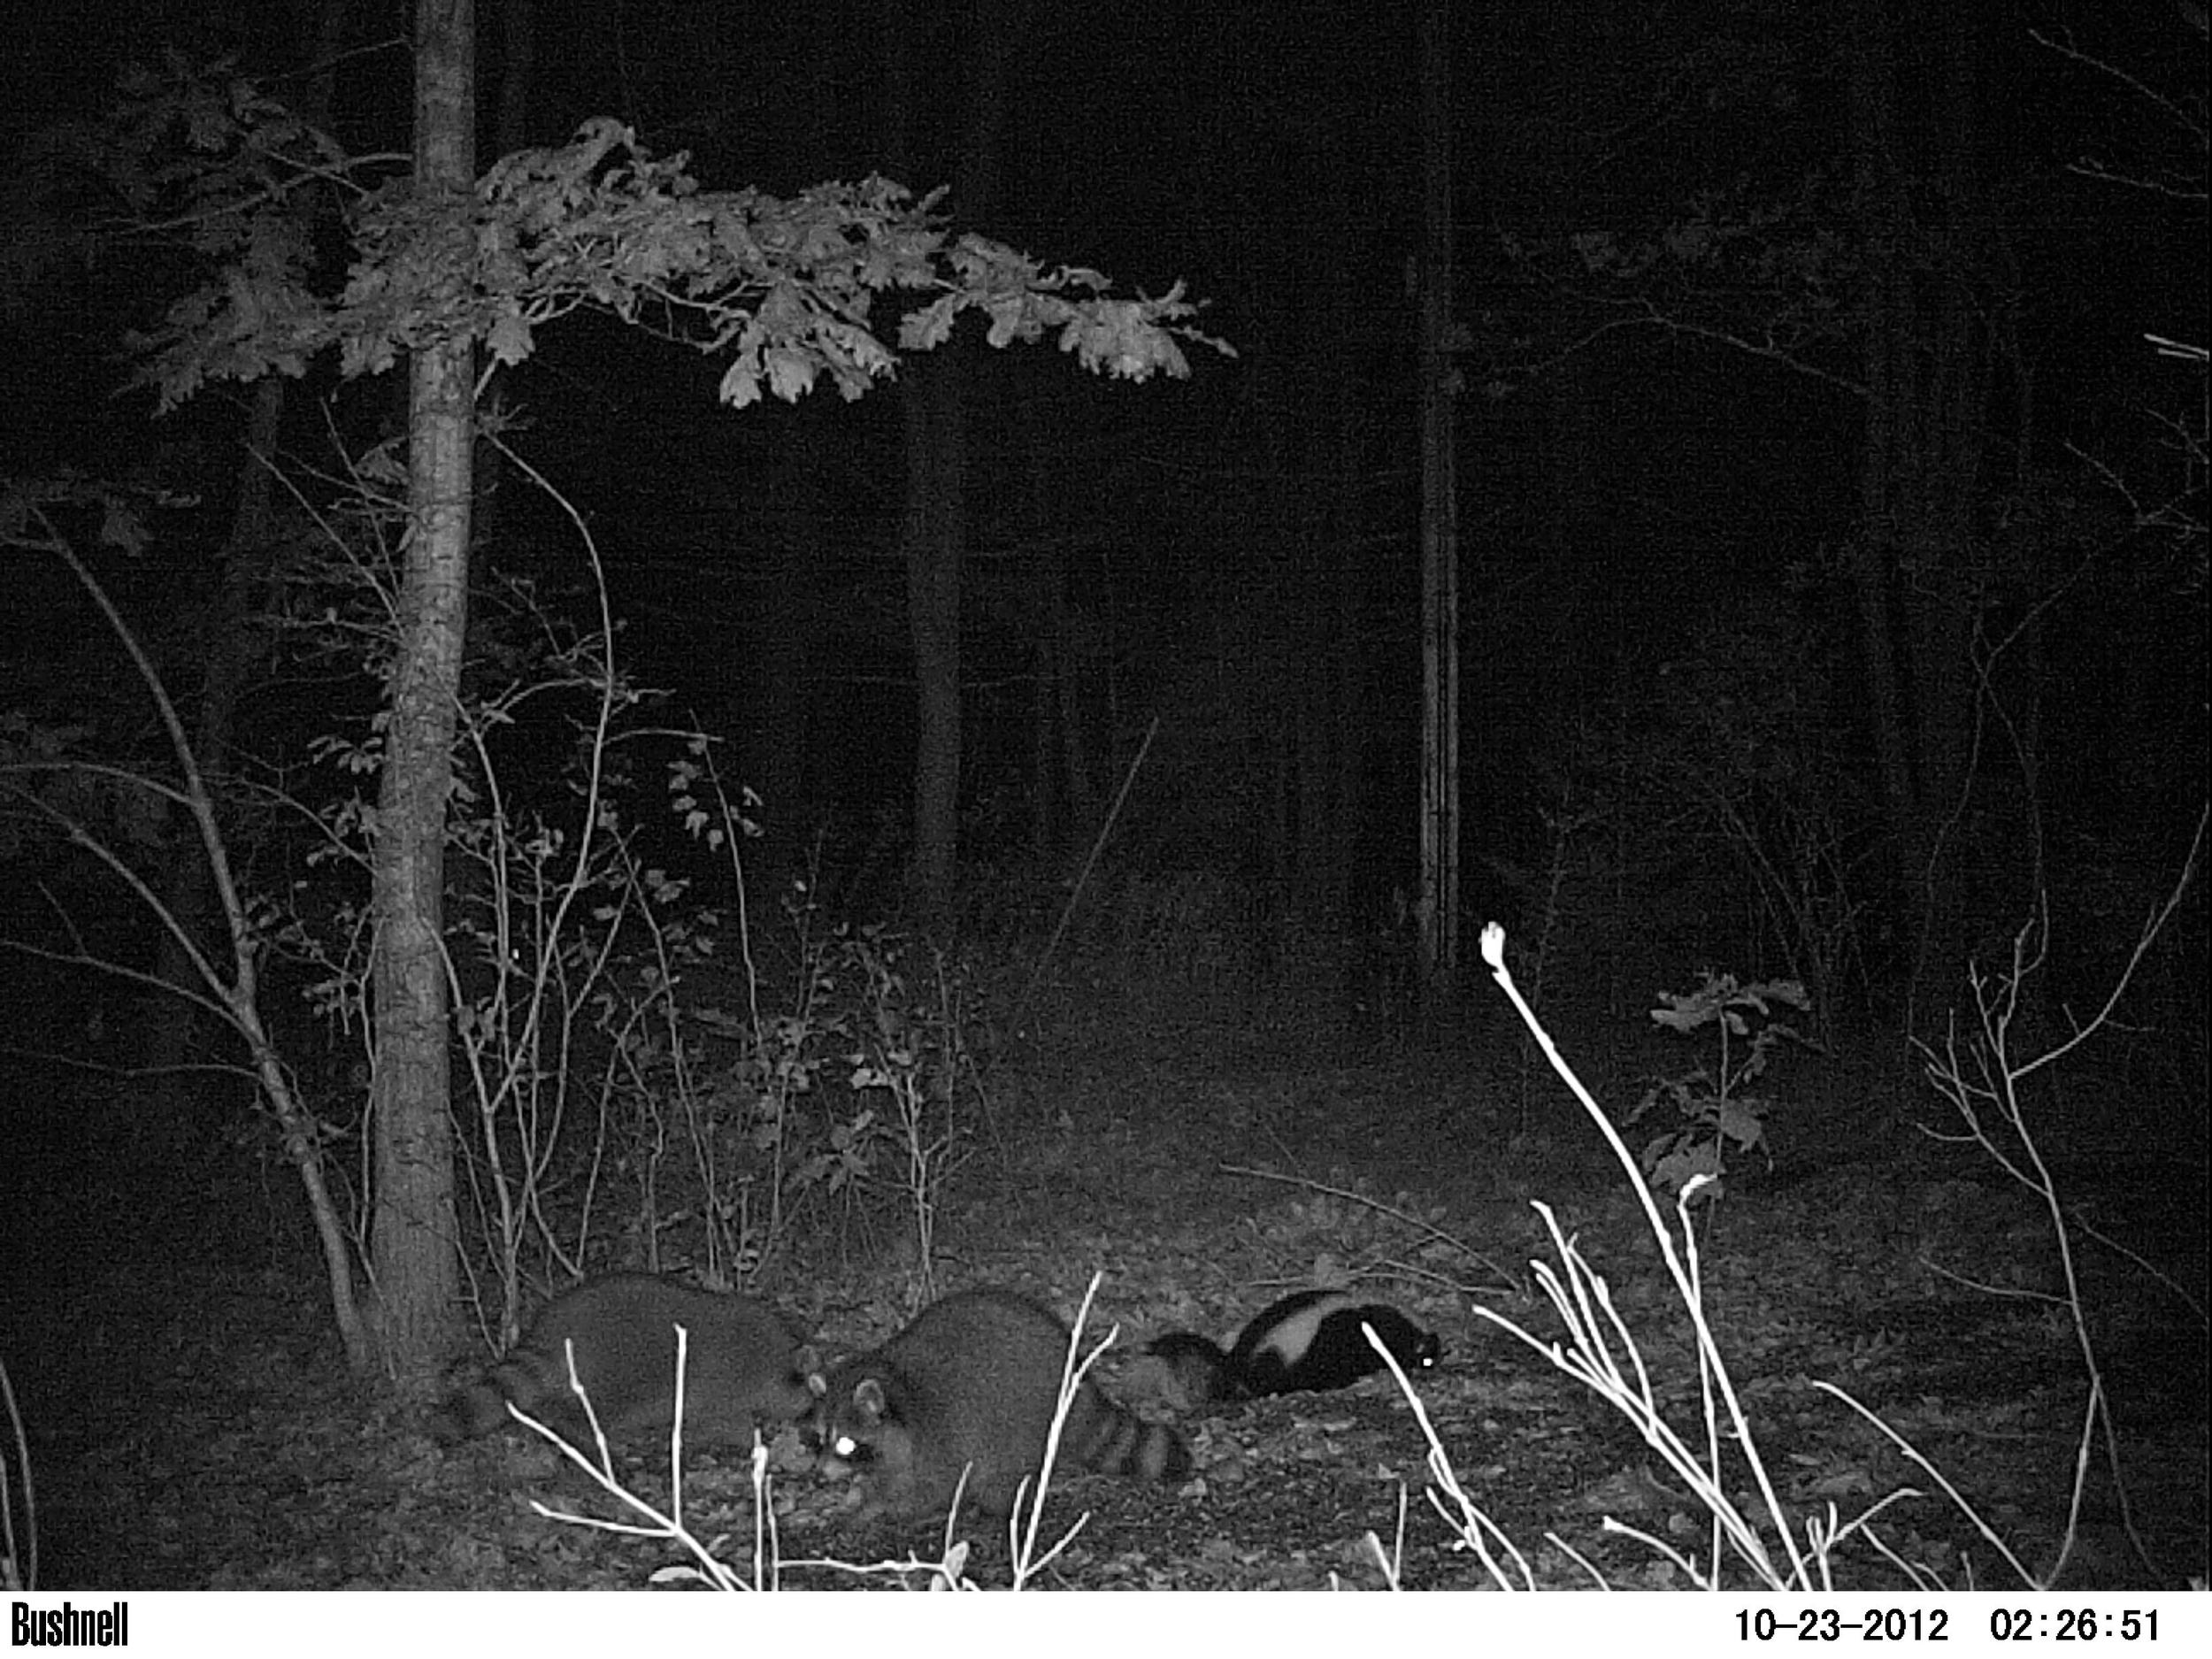 In case you didn't see it on our Facebook page, here's a shot from the new motion-triggered wildlife camera that Eli, Virginia, Julie and Patrick gave us for letting them live at our house.